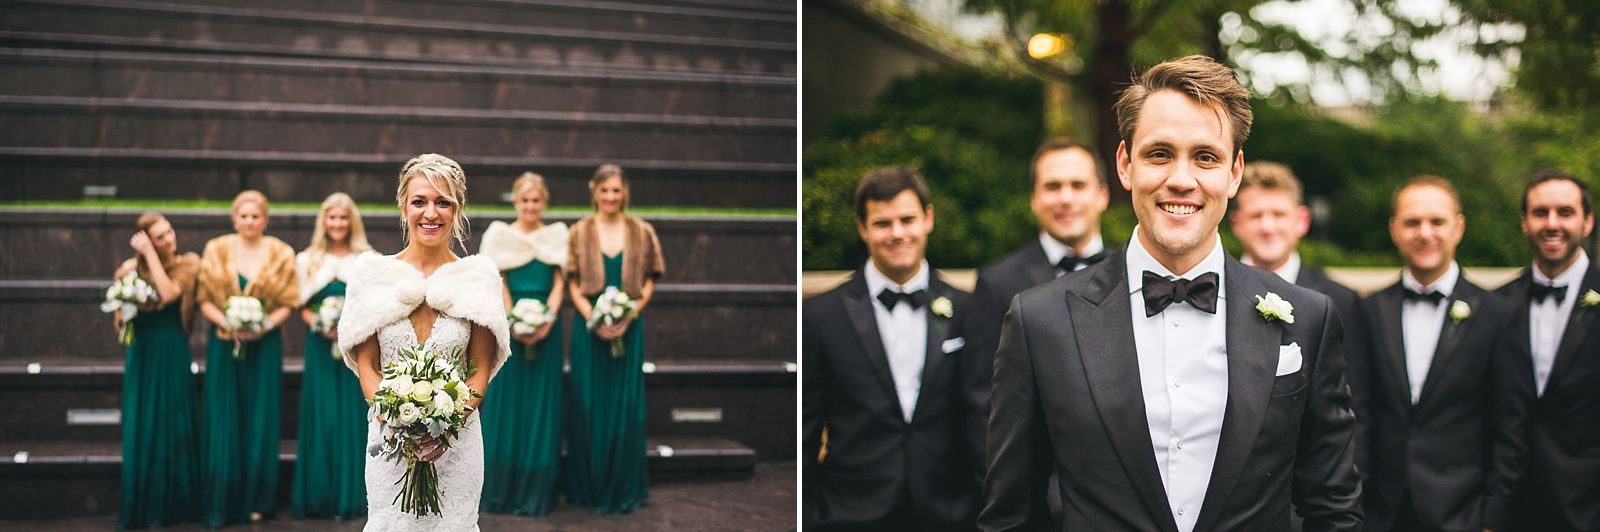 38 best chicago wedding photos - Ivy Room Wedding // Audrey + Tyler